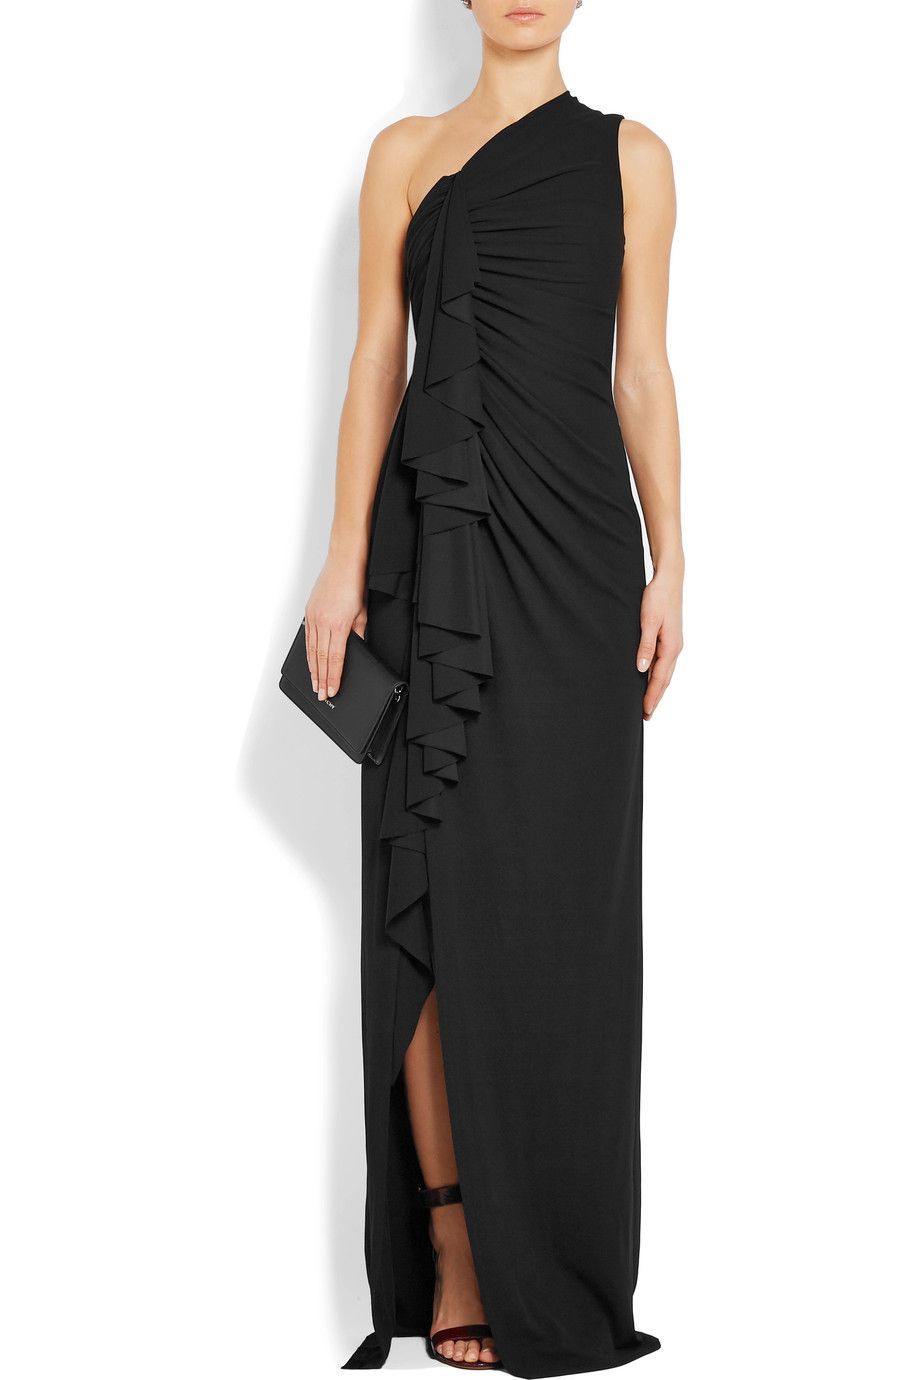 Givenchy   One-shoulder ruffled stretch-crepe gown   NET-A-PORTER.COM